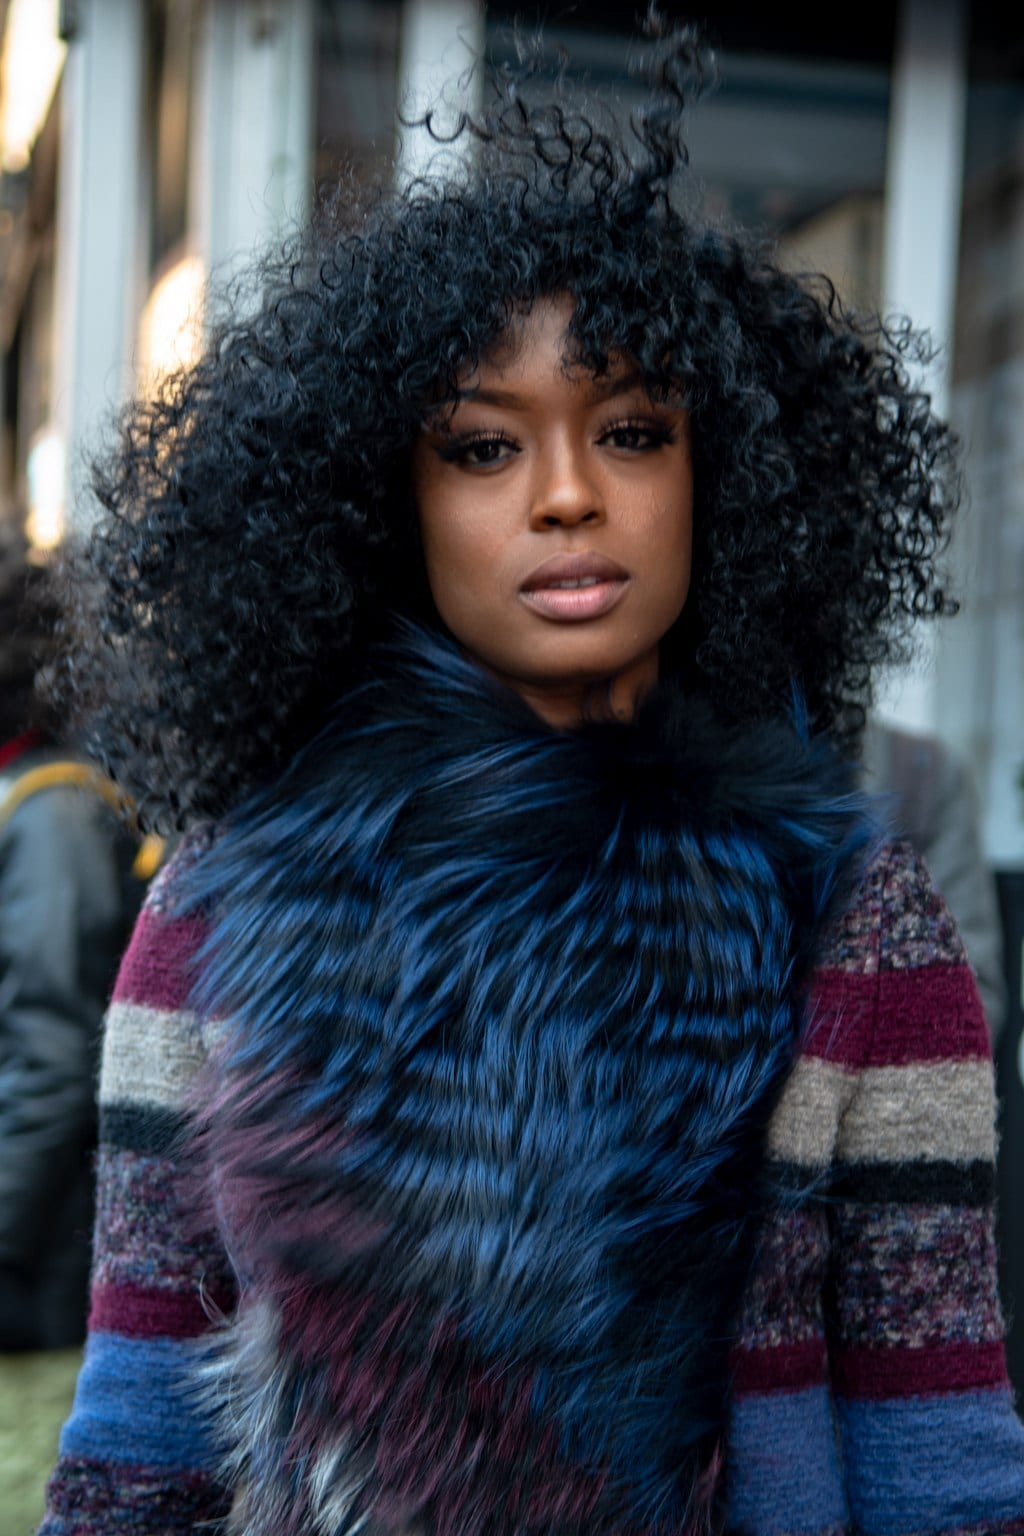 Hair trends 2019: Street style of woman with natural curly shoulder length hair with a curly fringe.